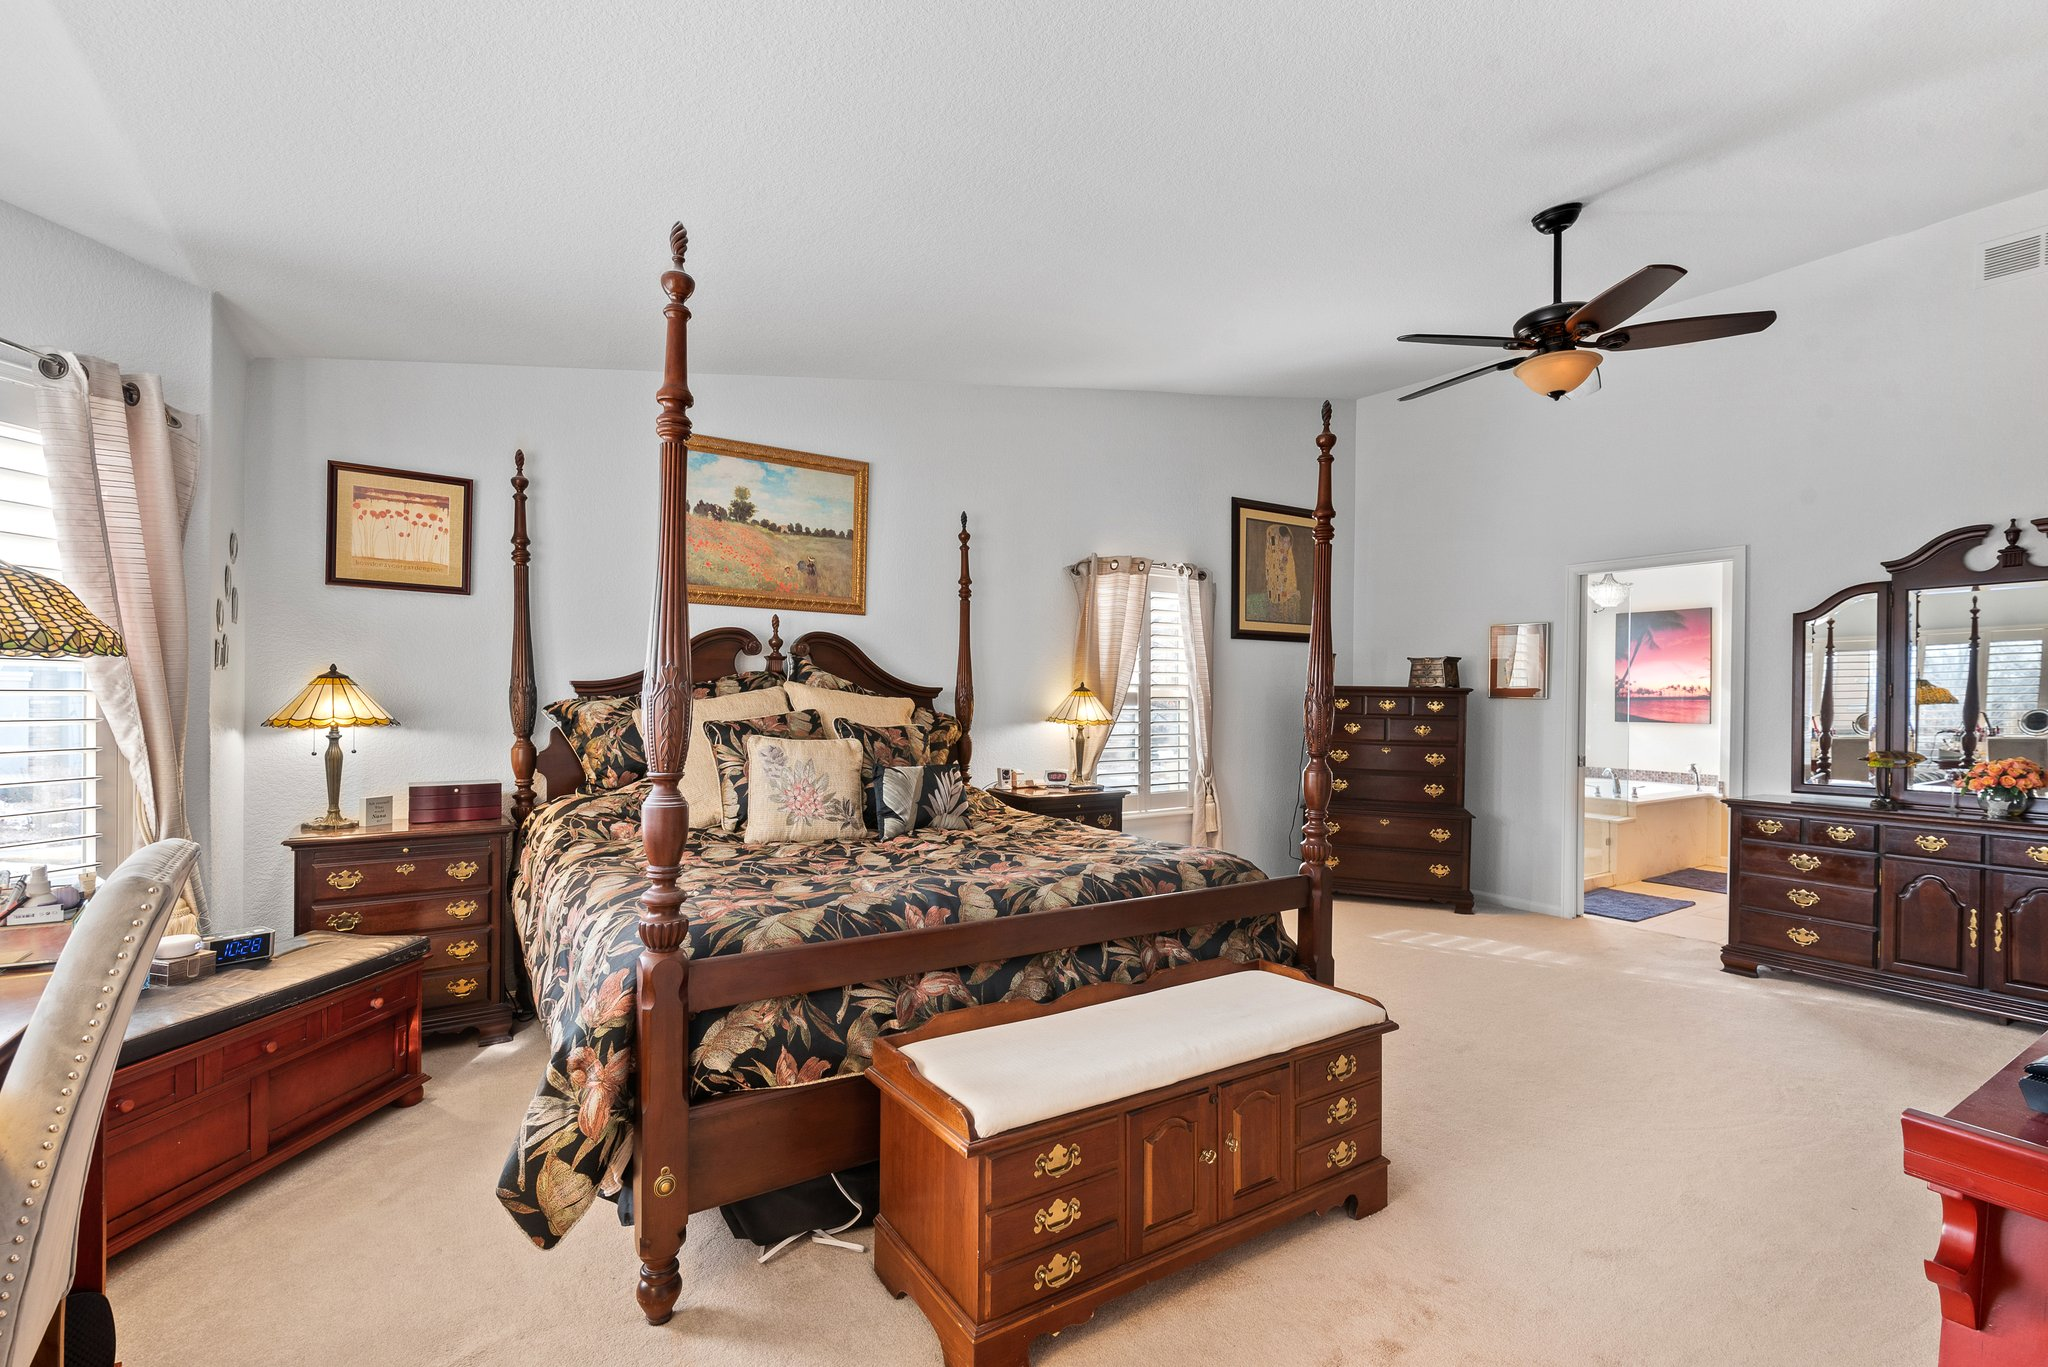 Master suite located at the back of the home